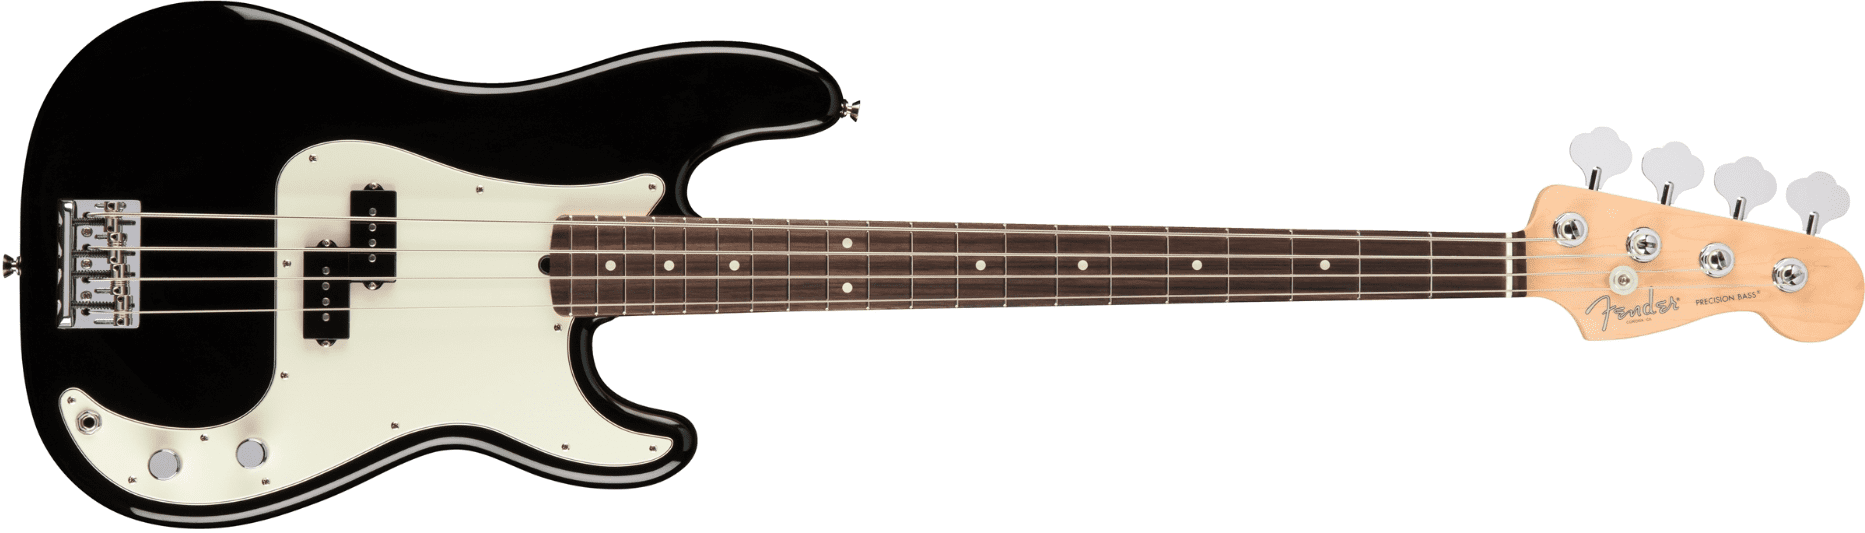 jazz bass brummt residential house electrical wiring diagram feature fender vs precision amazona de 2